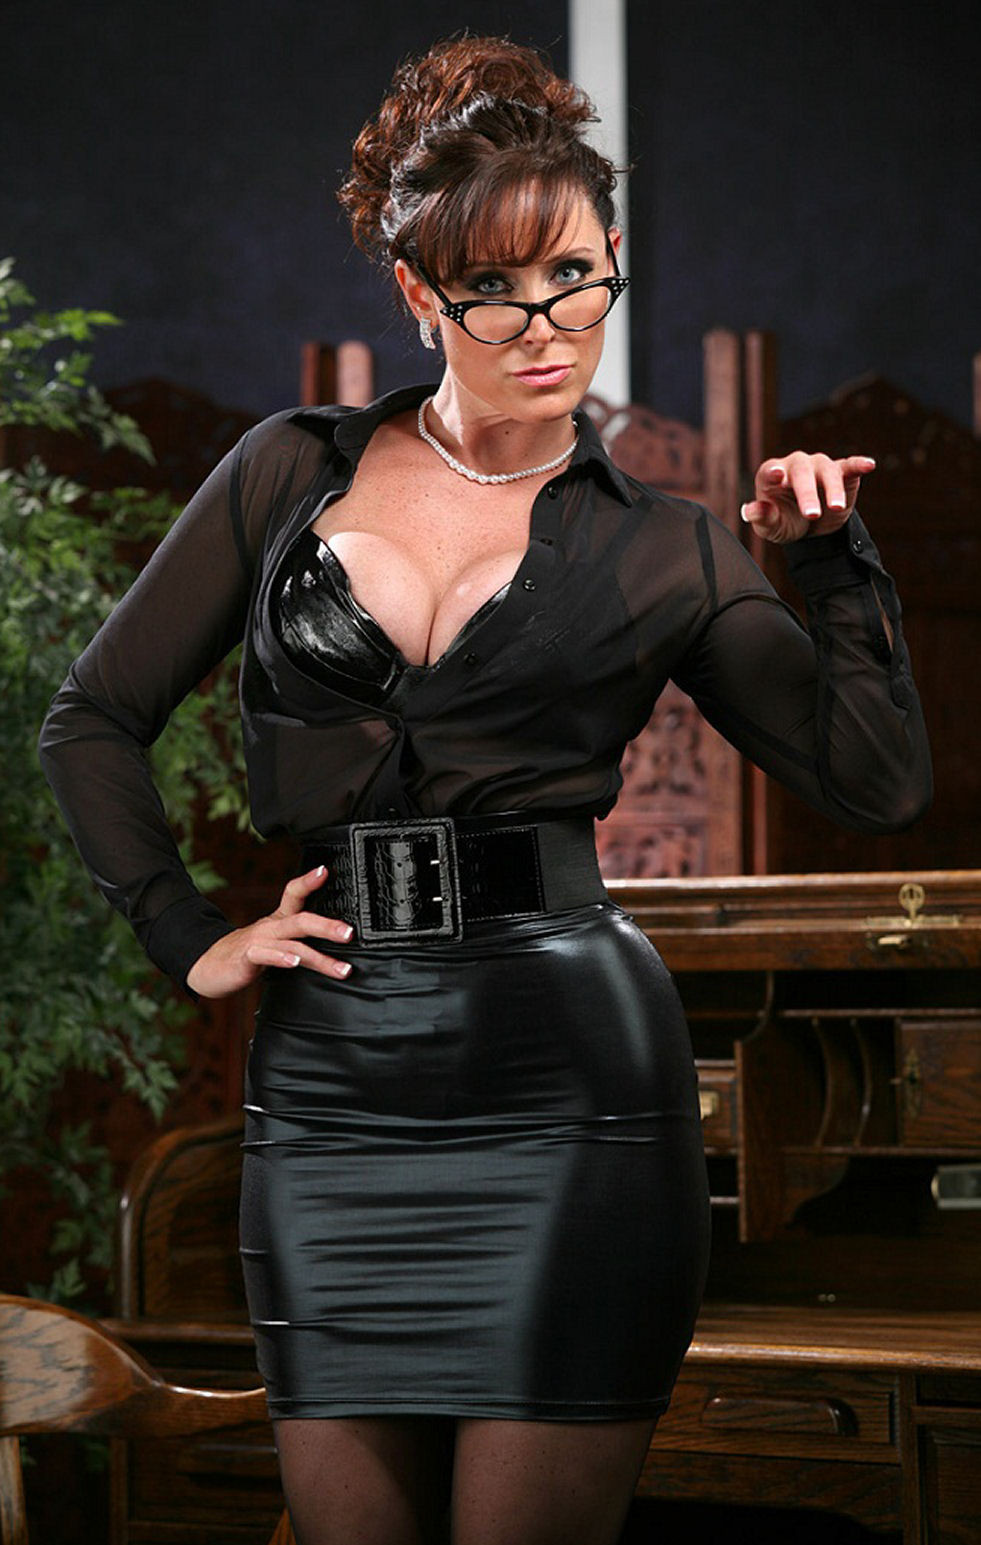 adult one on one chat mobile #femdom #mistress #lady #classy #glasses #nonnude  #skirt #leather #waistbelt #milf #mature #nails #strict